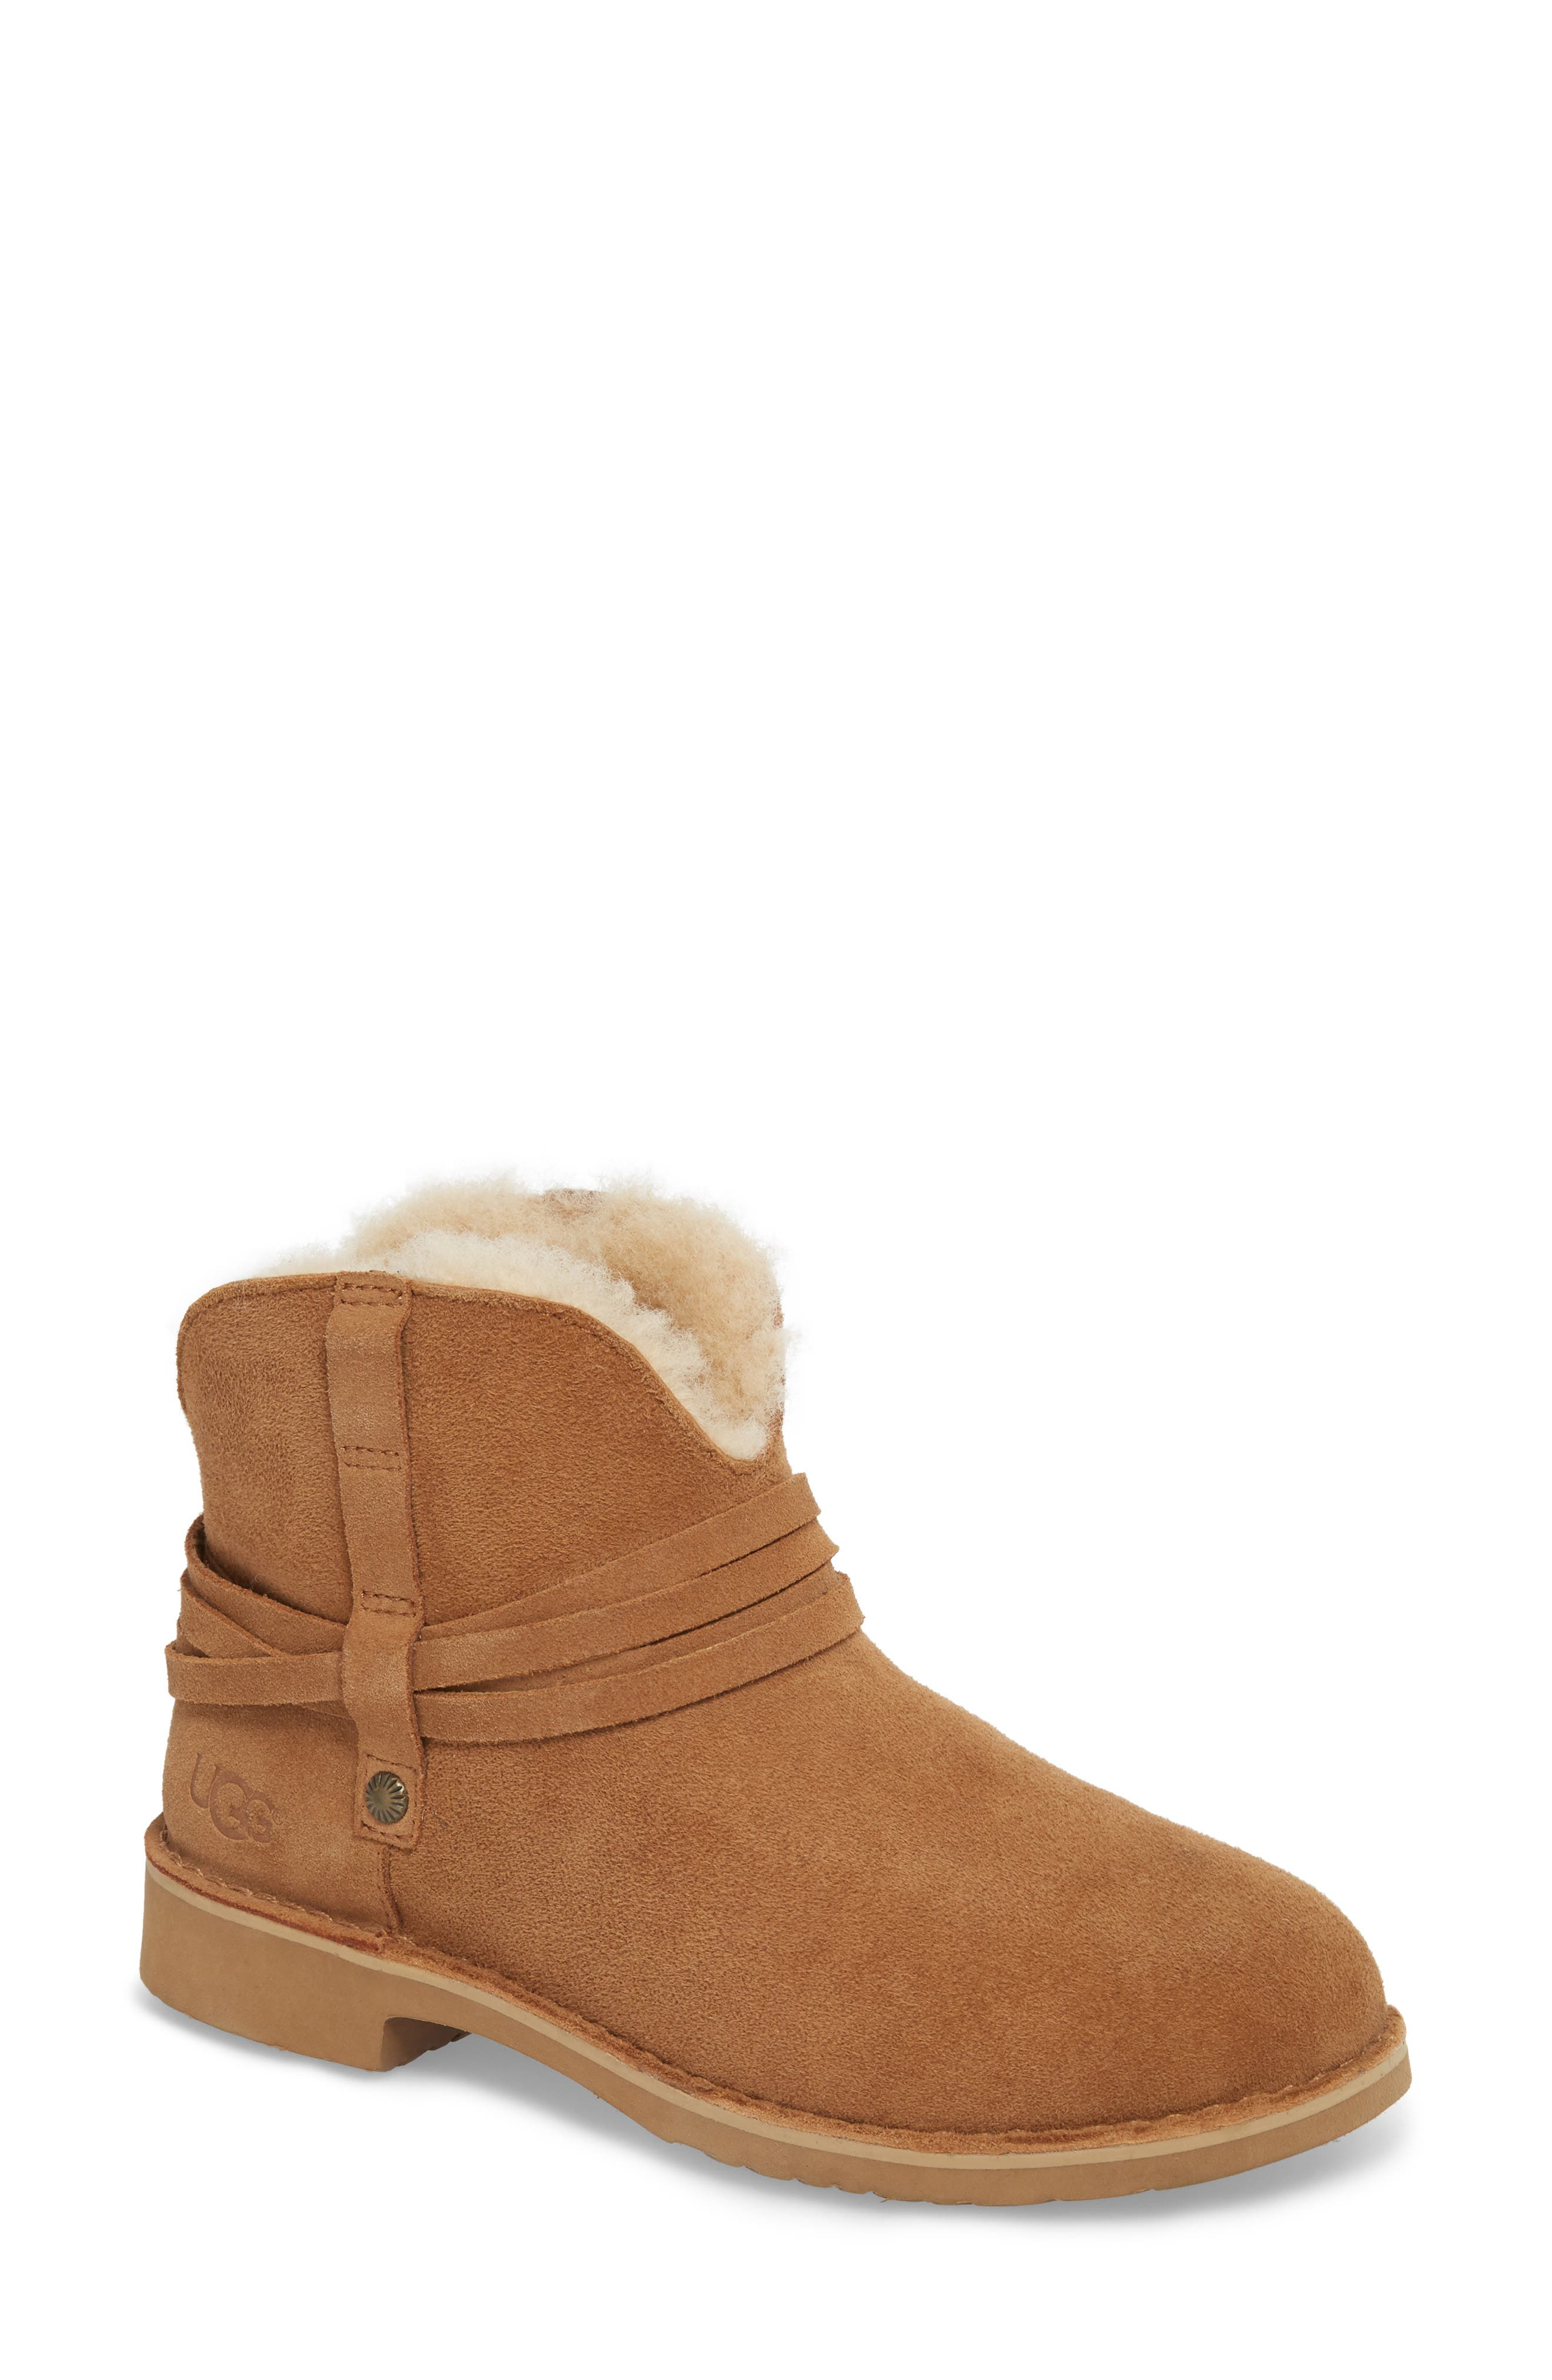 Pasqual Boot,                         Main,                         color, CHESTNUT SUEDE